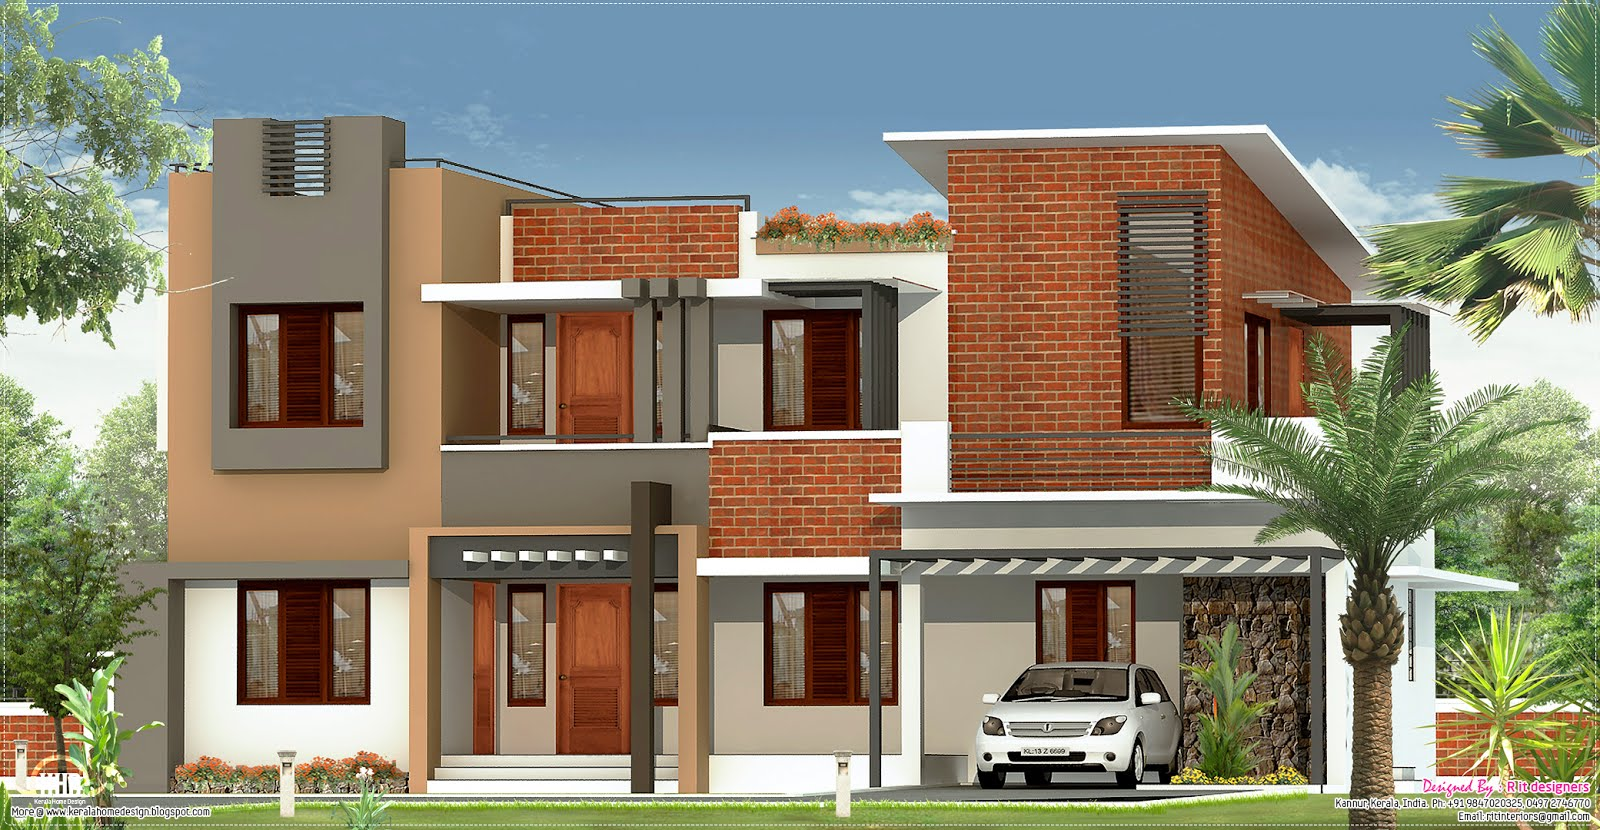 Roofing Design For 3 Bedroom House on